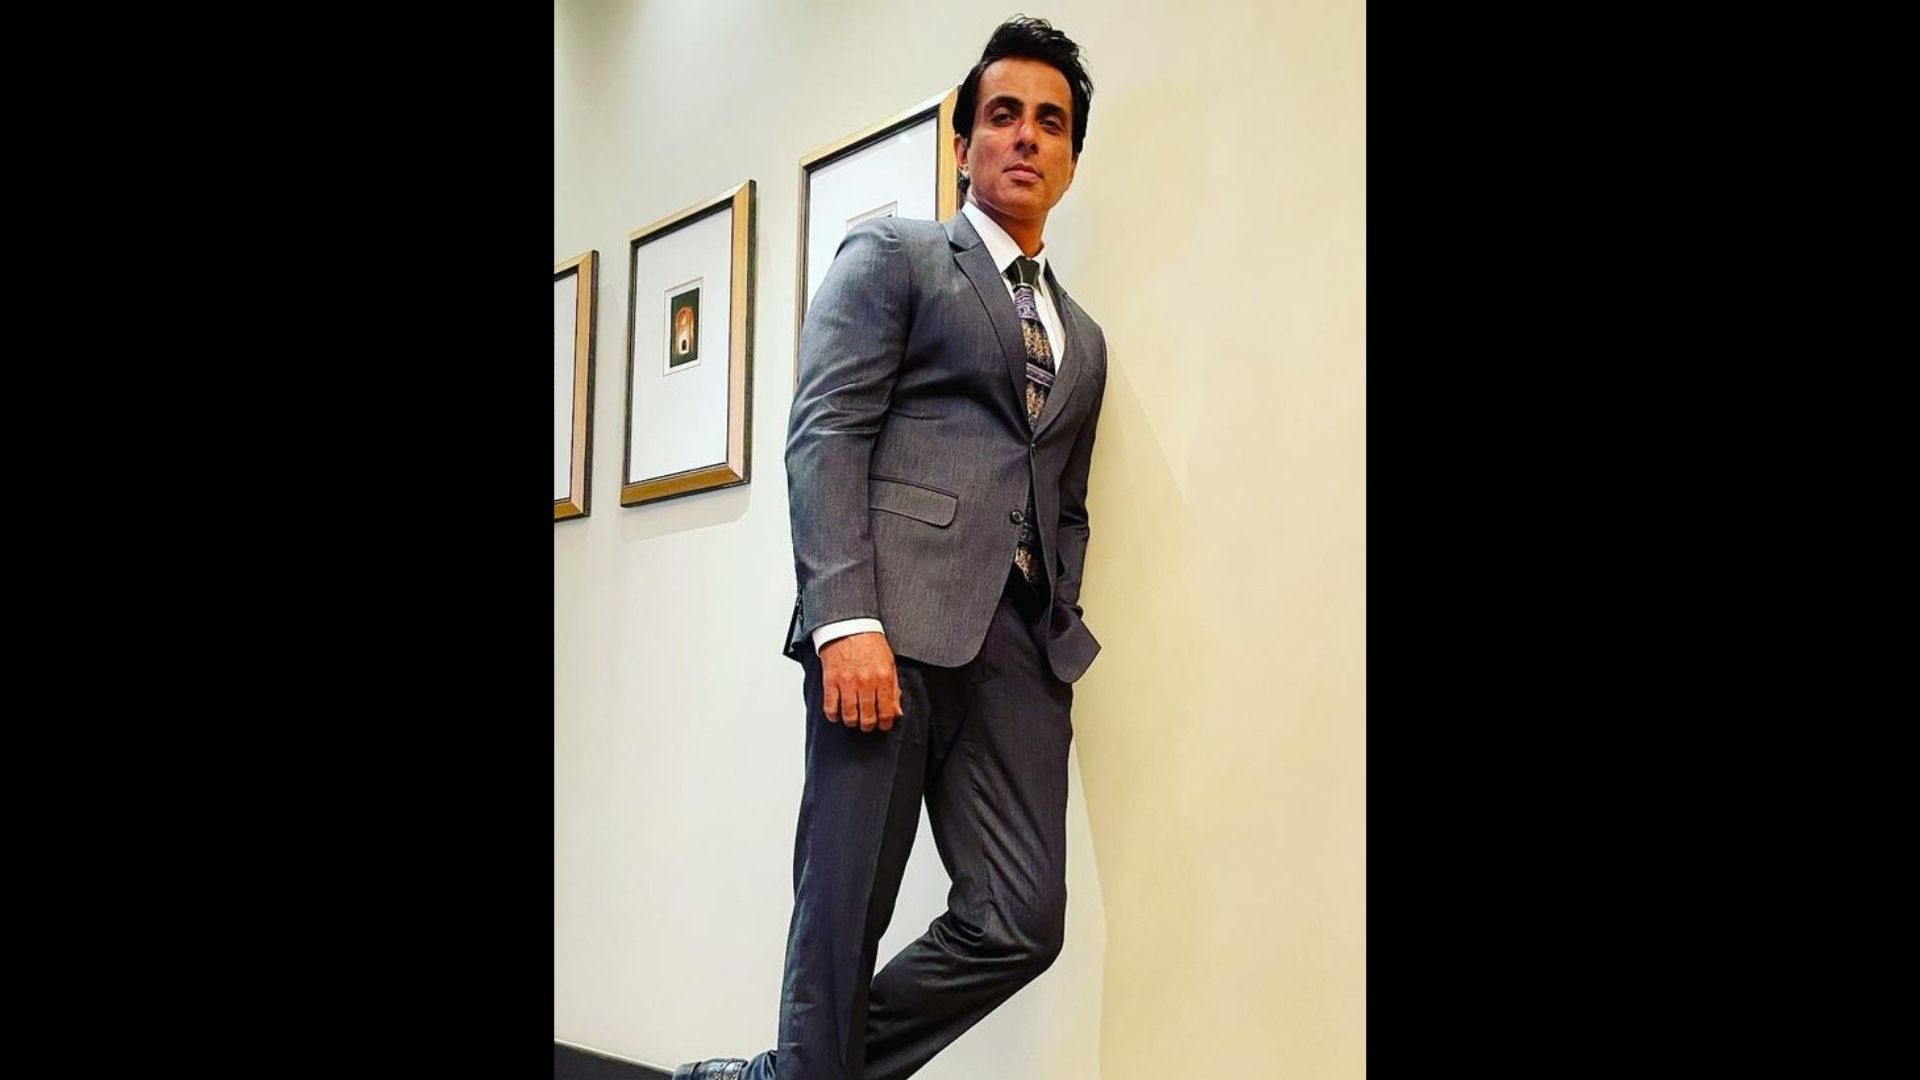 Sonu Sood's Mumbai Office 'Surveyed' By Income Tax Department – REPORTS